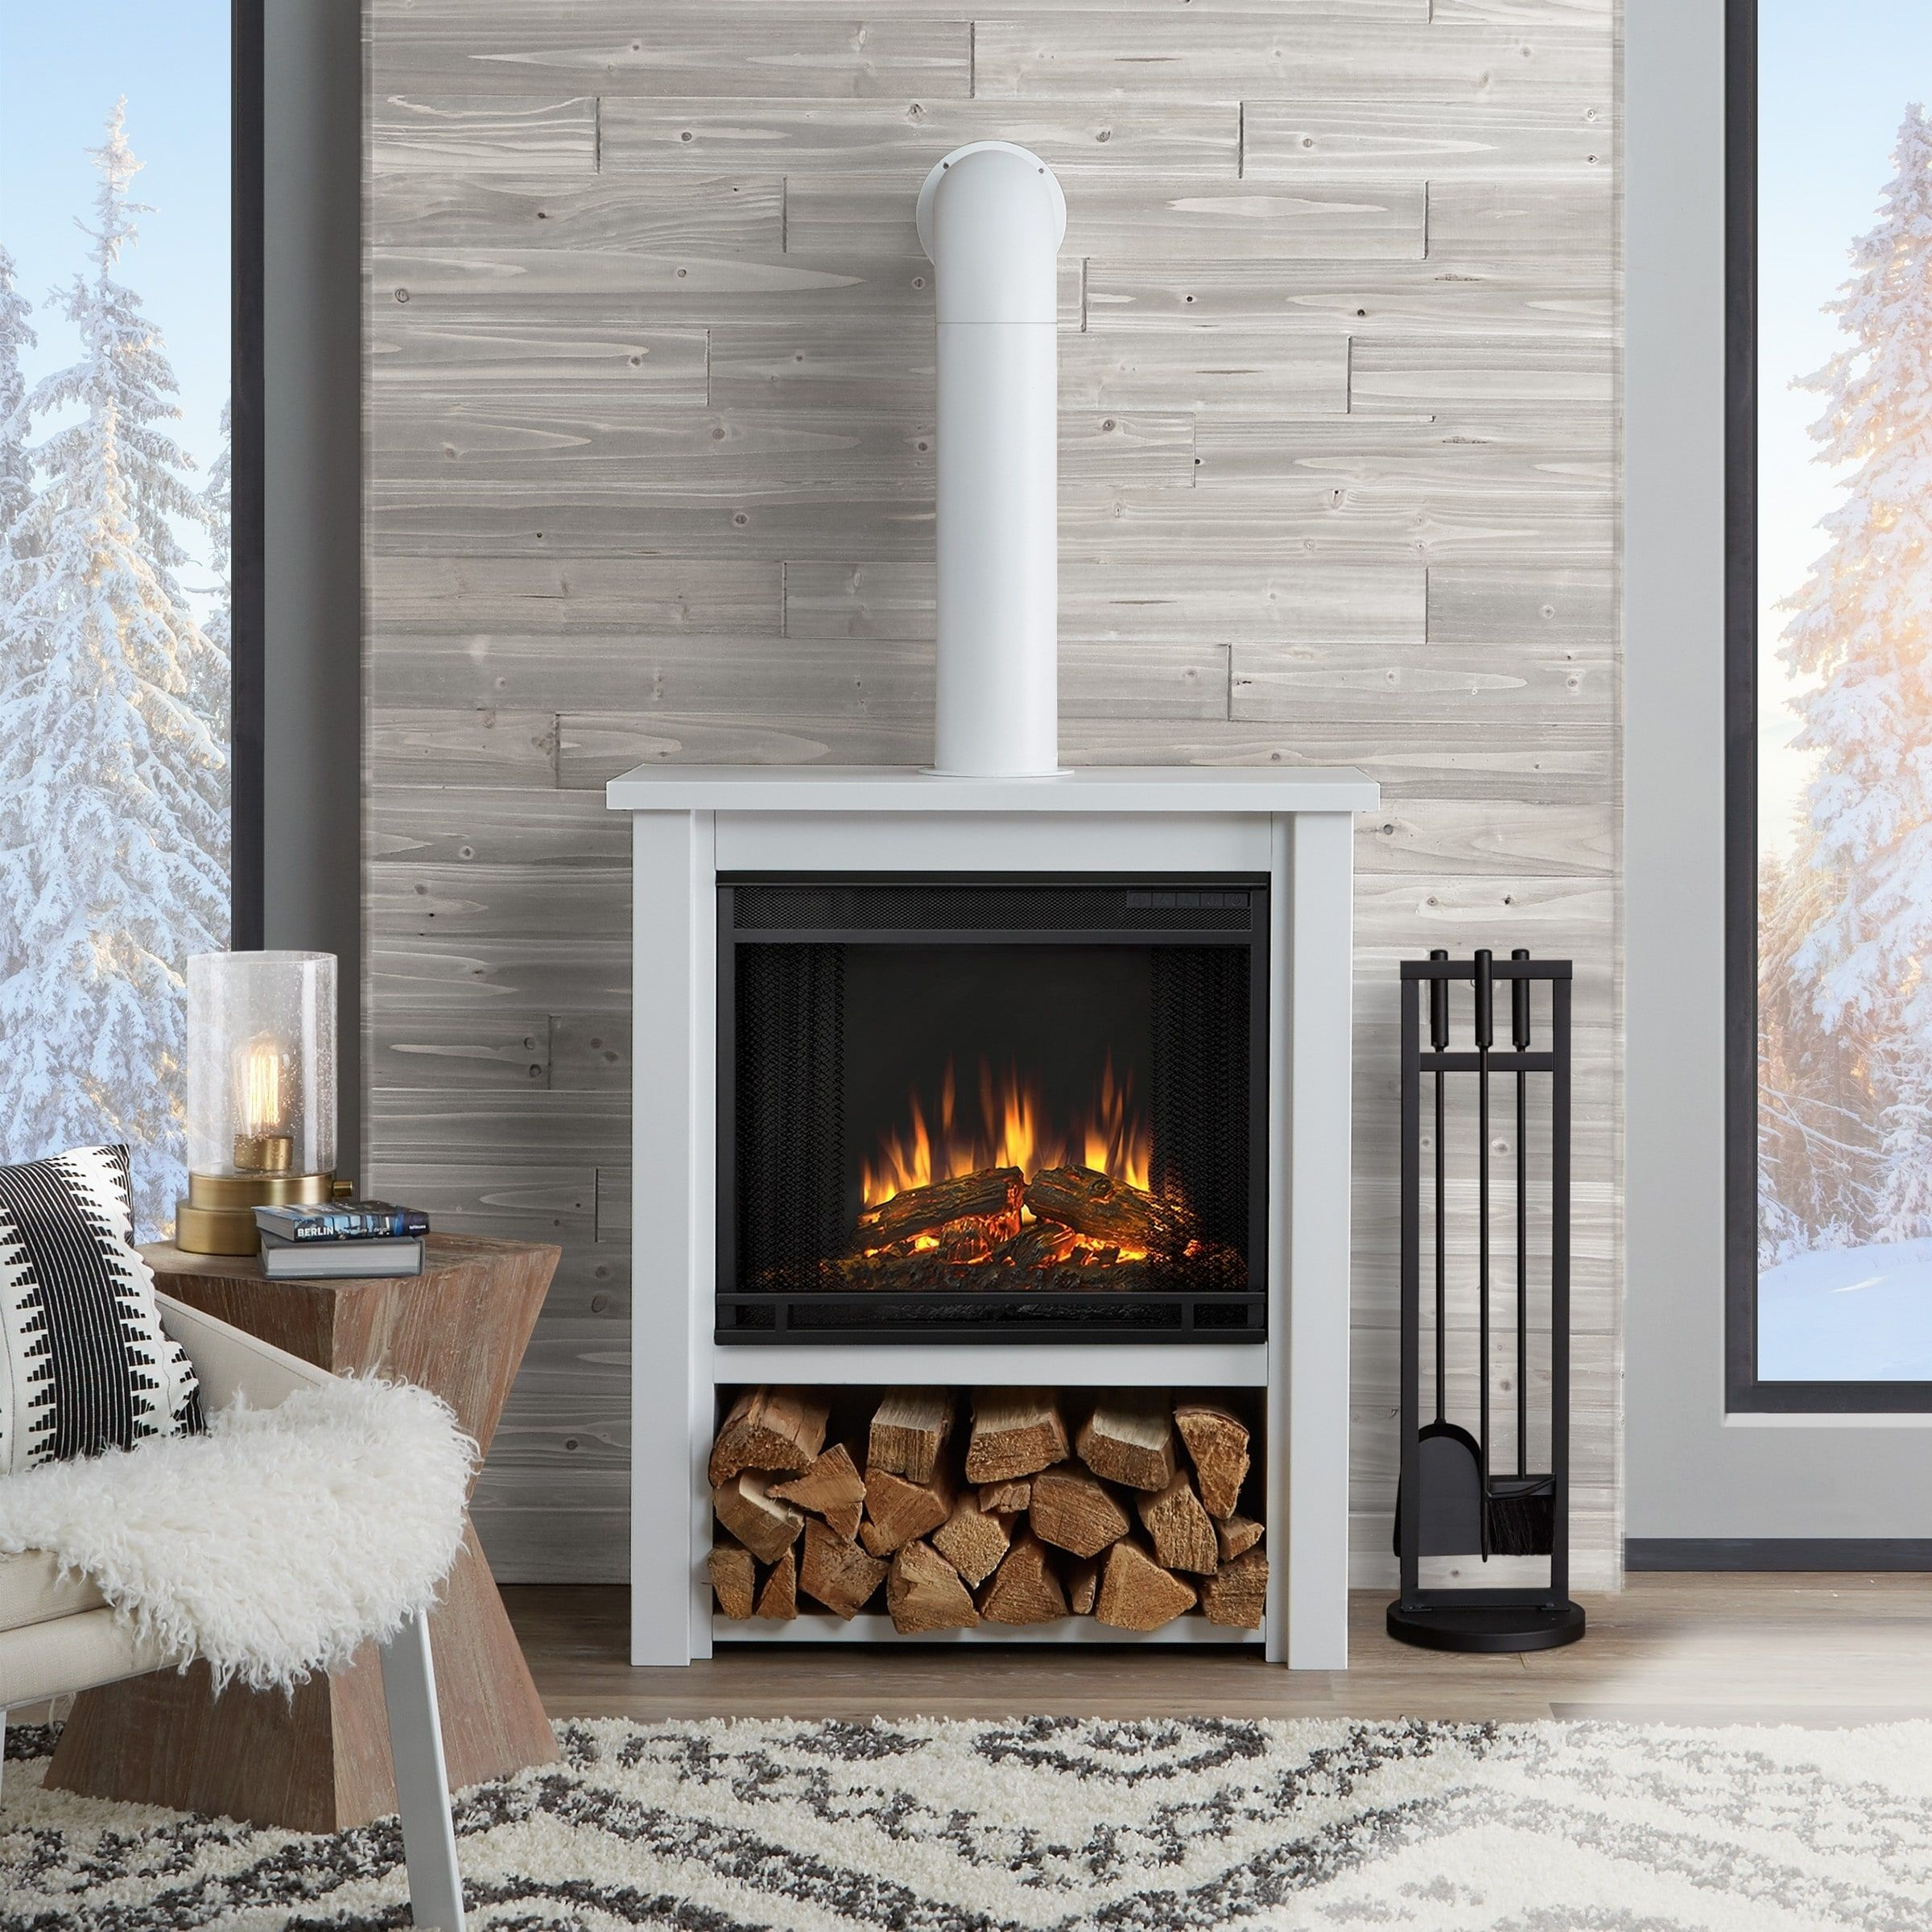 340 Fireplace Electric Ideas Fireplace Electric Fireplace Built In Electric Fireplace